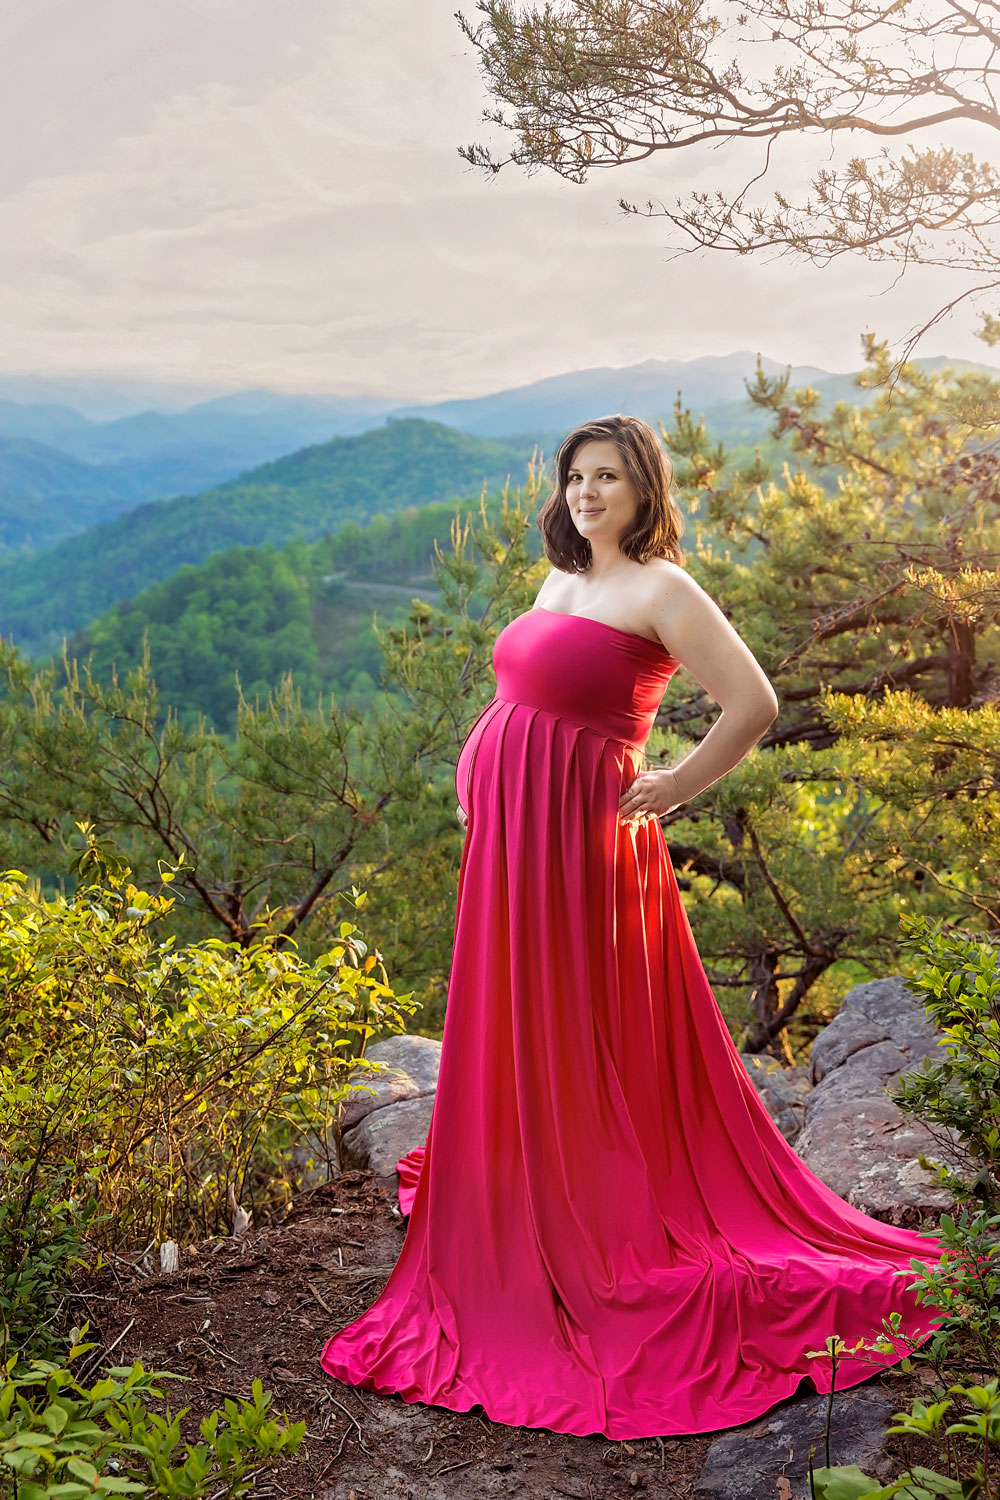 smoky-mountain-maternity-session-pink-gown.jpg